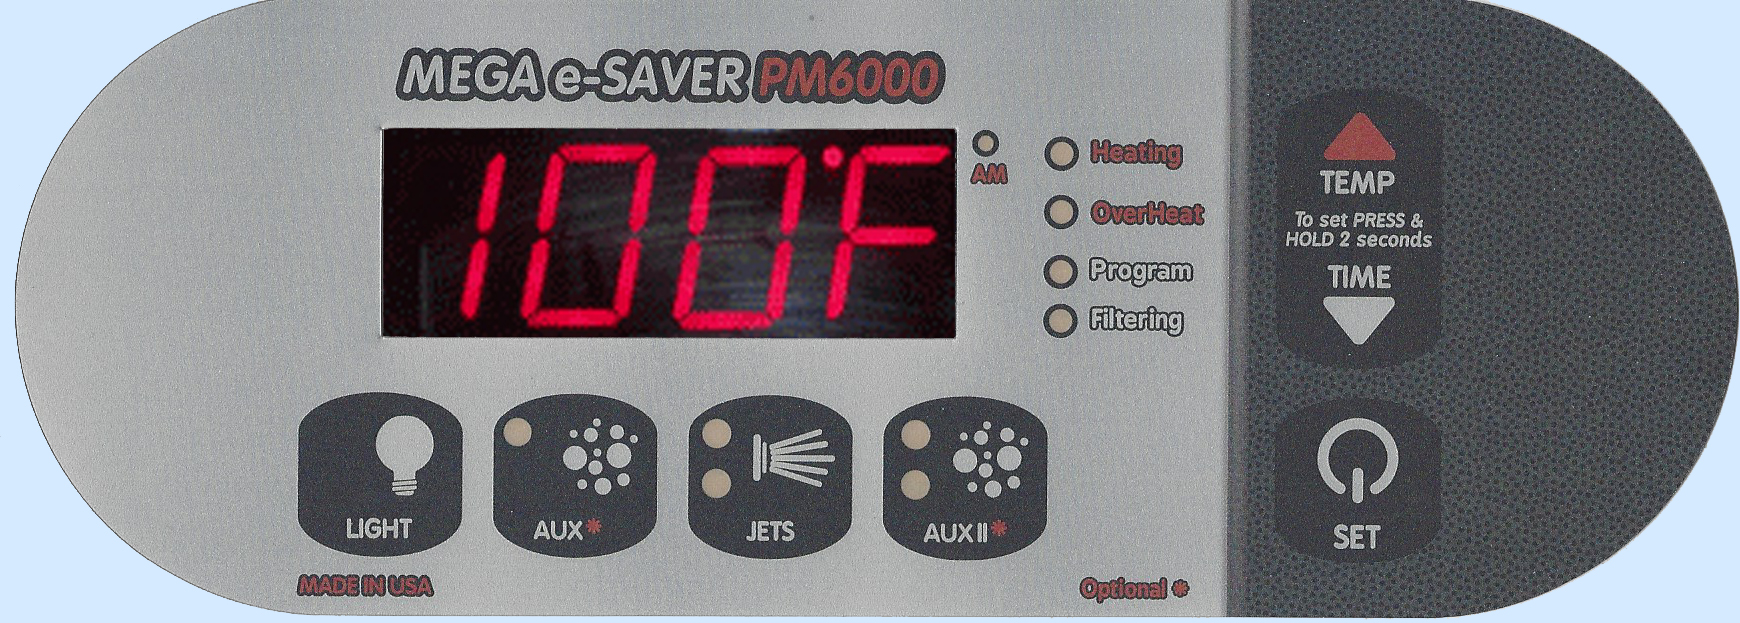 hight resolution of pm6000 digital spa side control